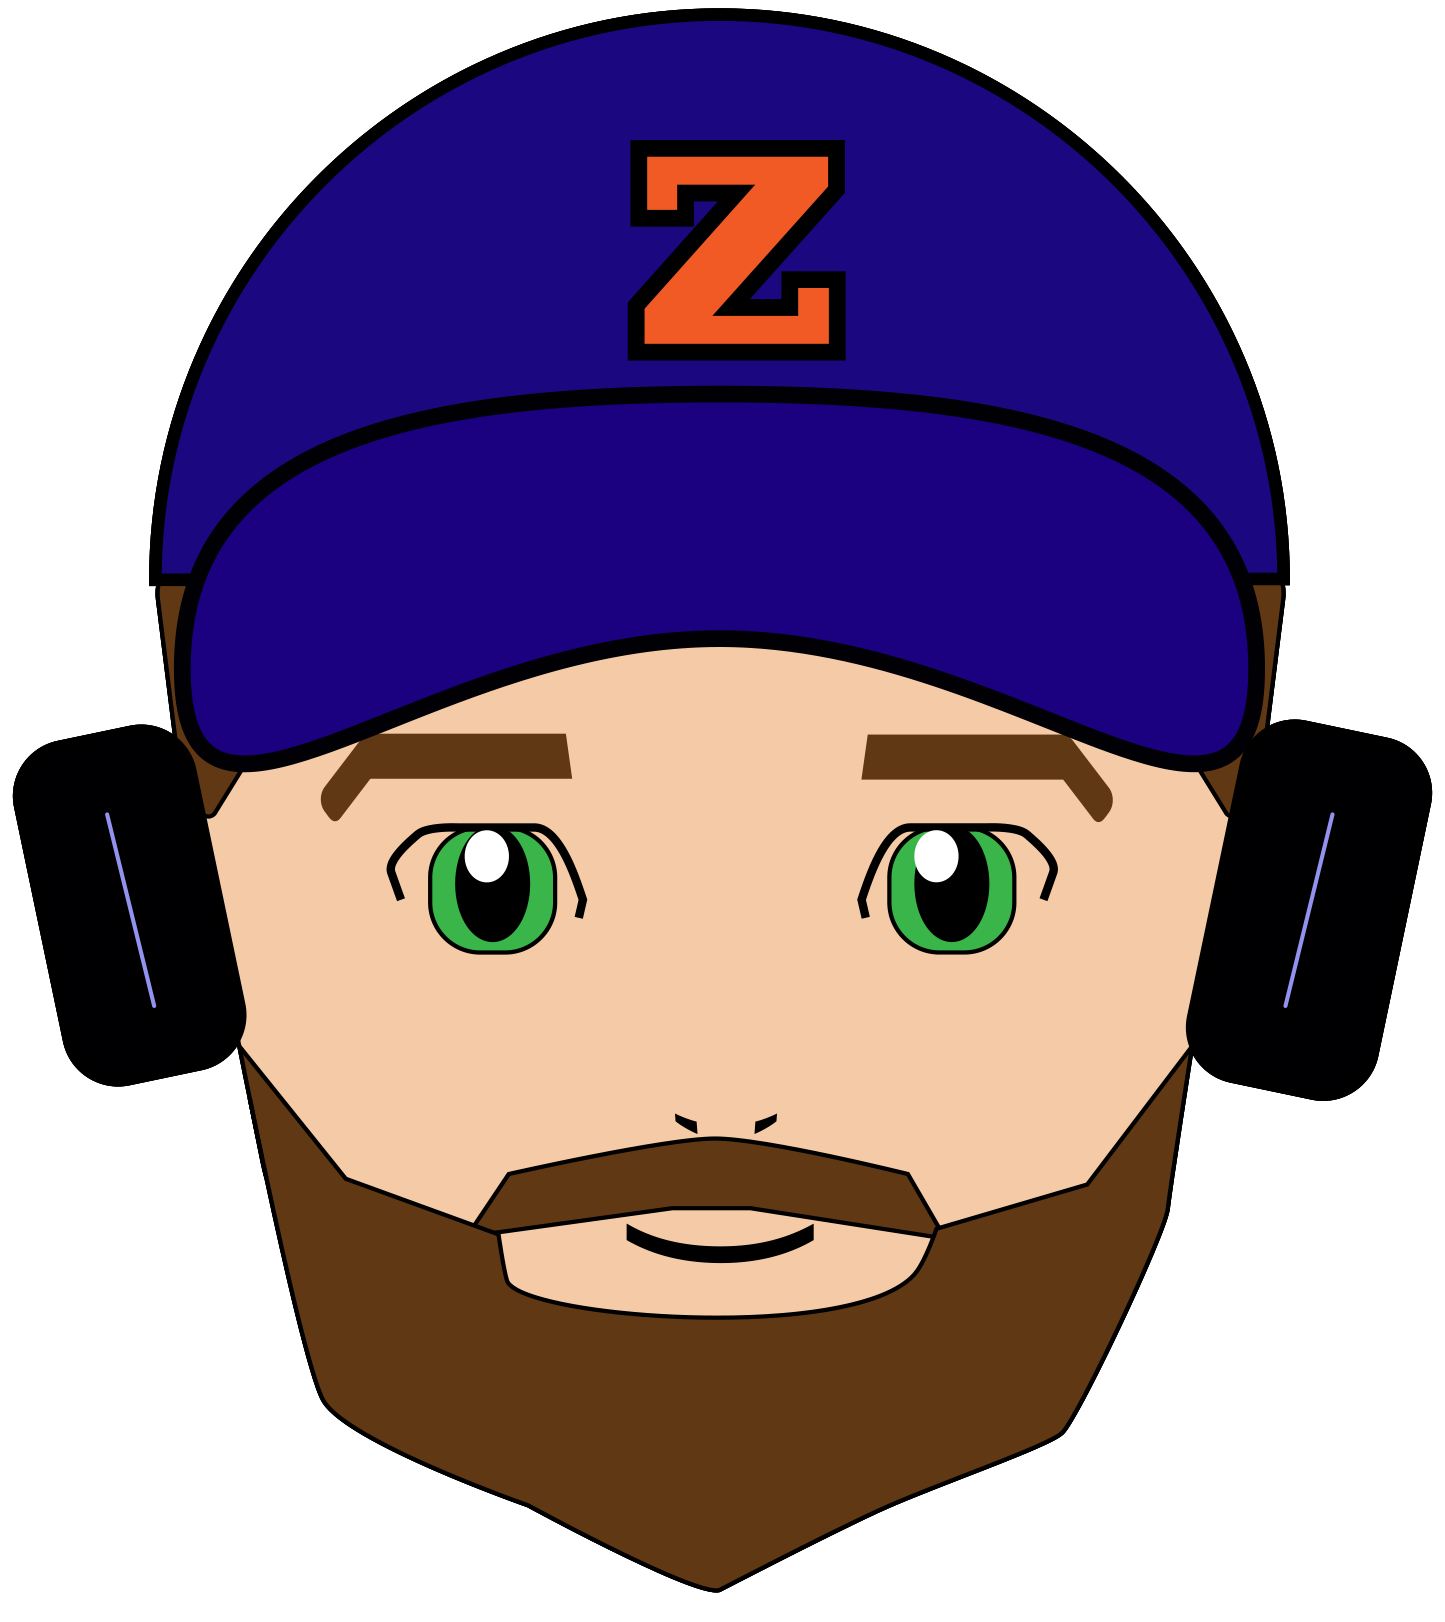 Me represented in a somewhat Anime style.  Headphones and Bears Beanie Cap included.